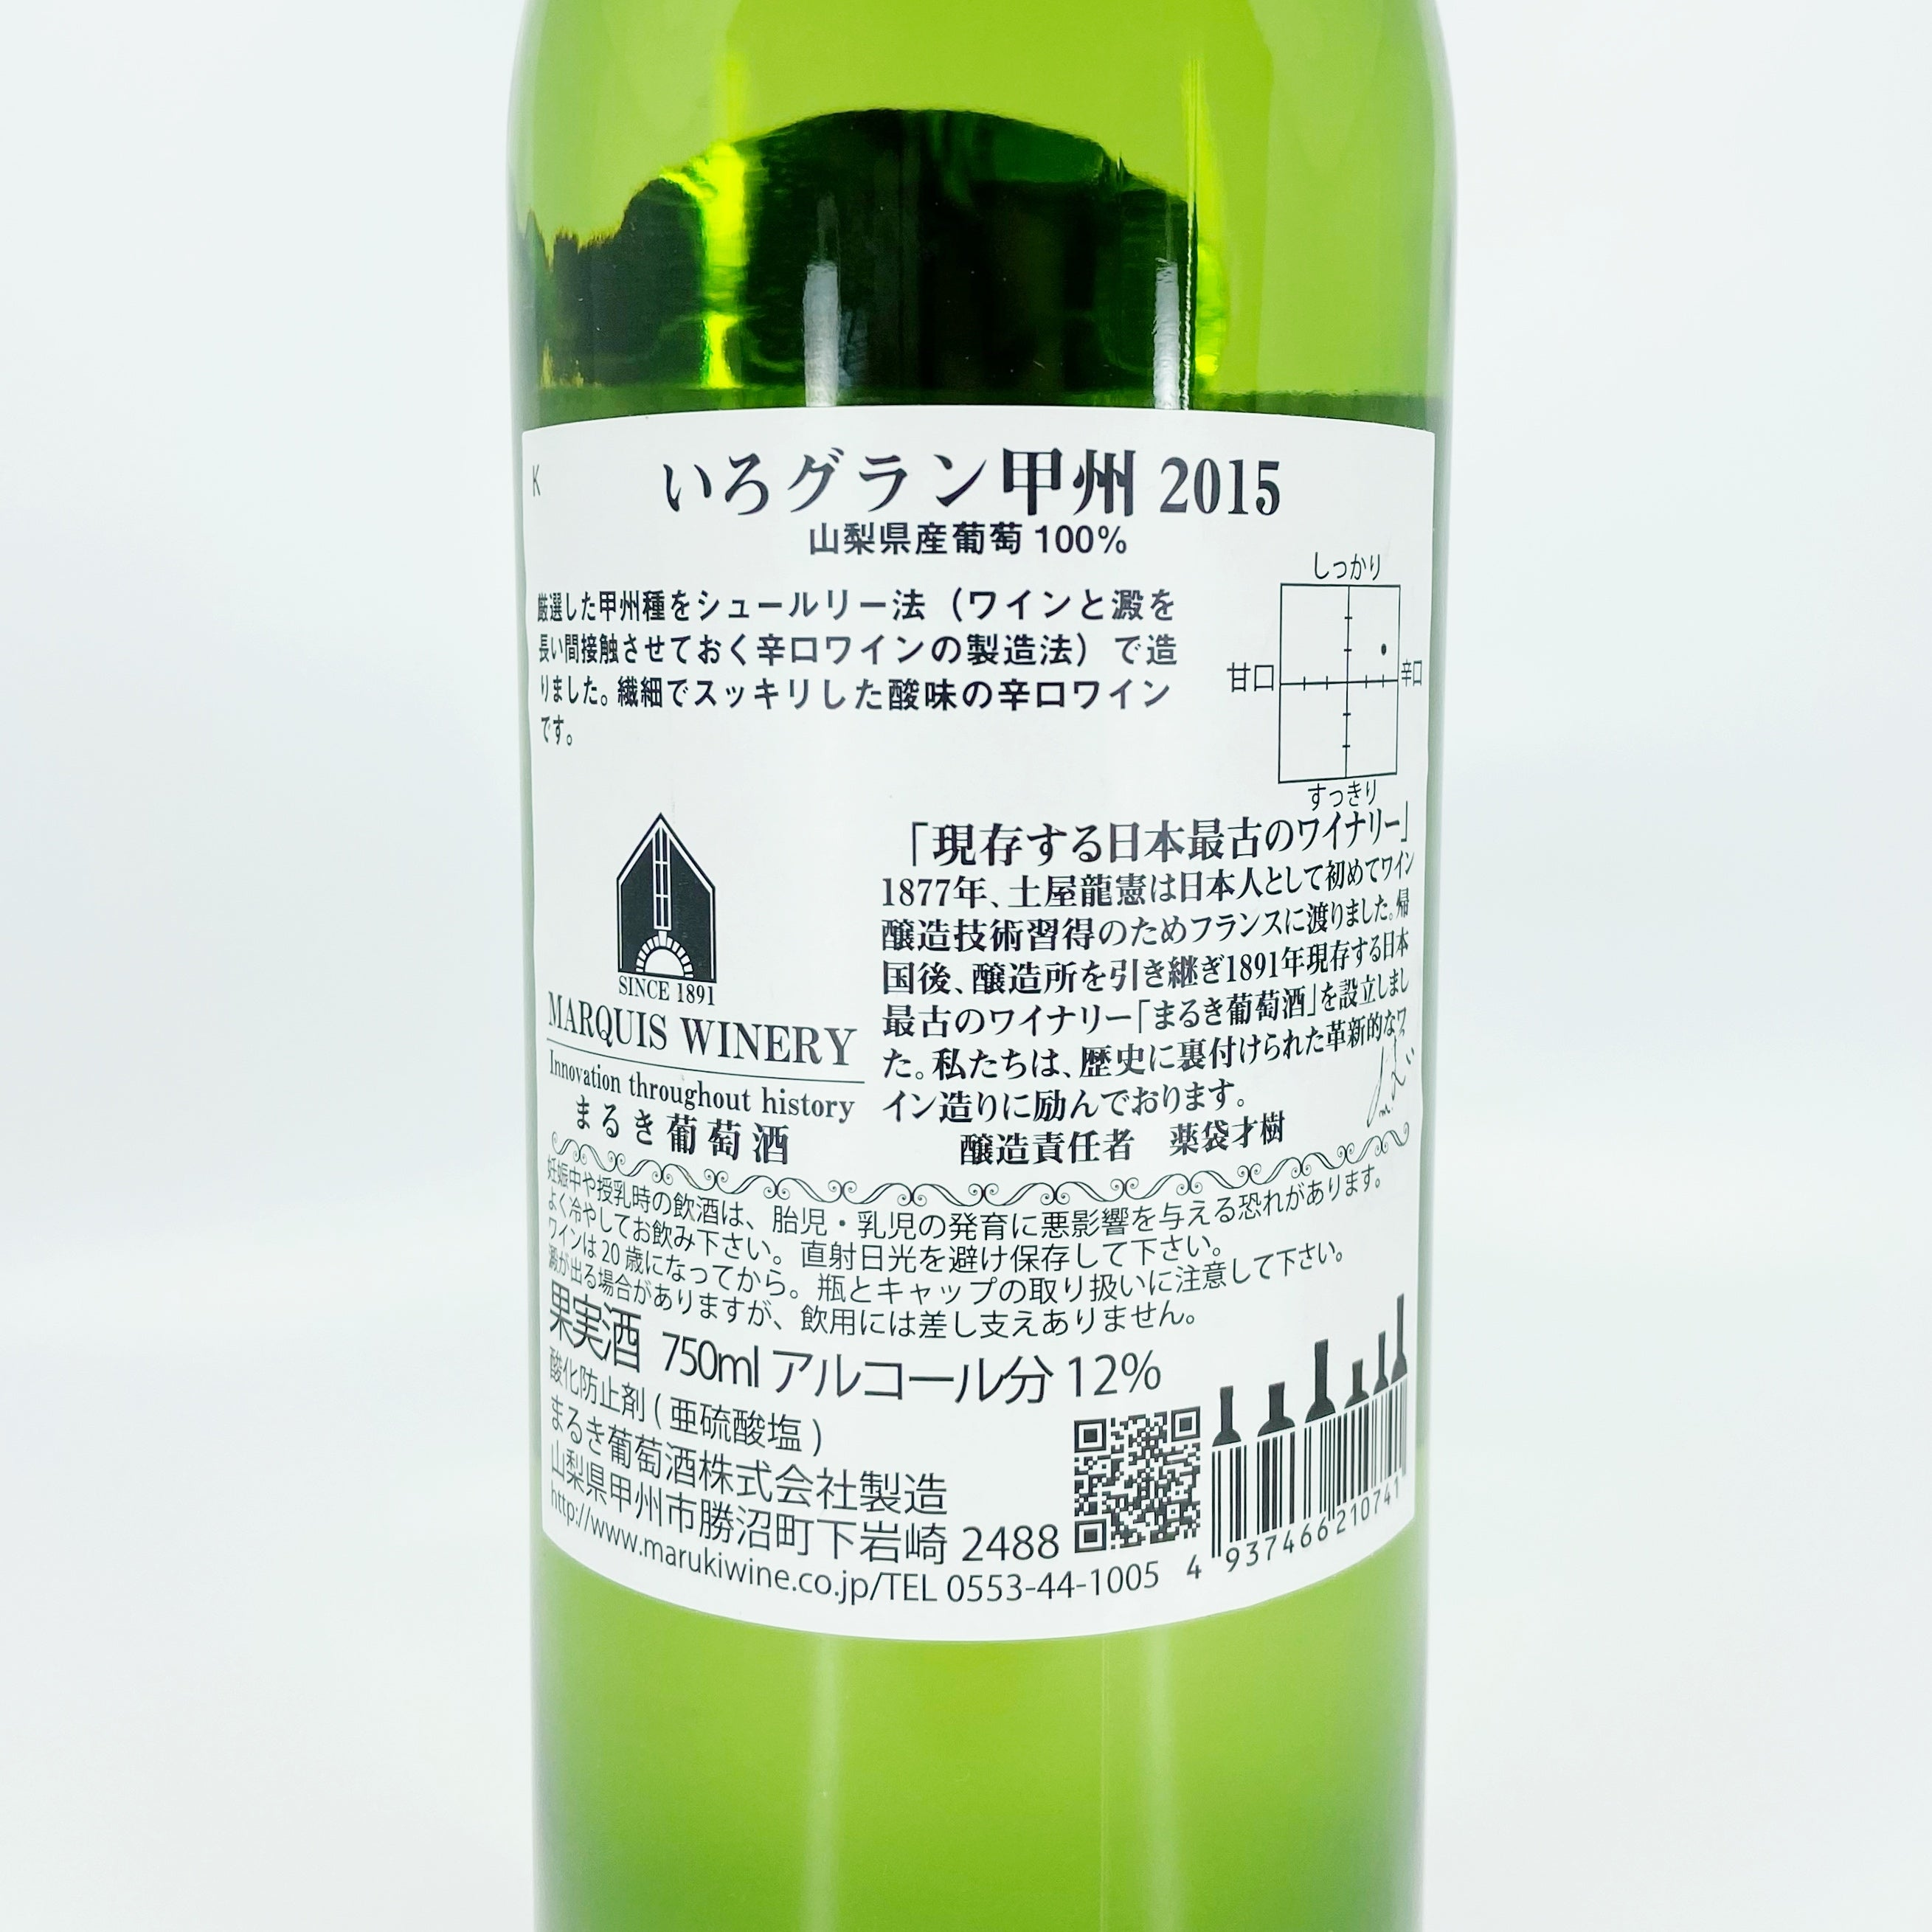 山梨白酒 Marquis Winery 'Iro' Grand Koshu 2015 Vintage (750mL)